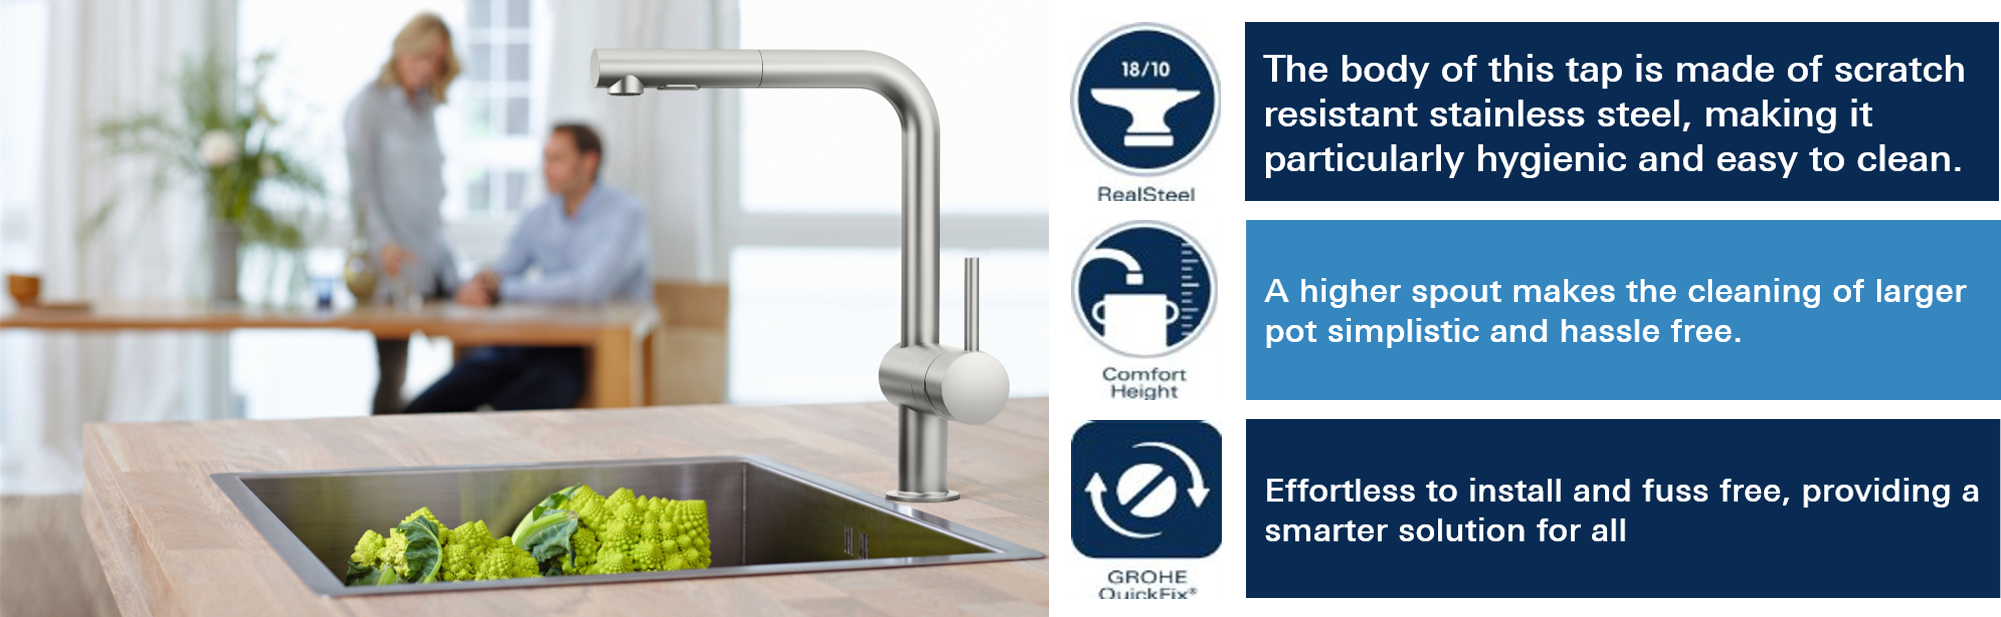 Modern Grohe Kitchen Faucets Canada Composition - Bathtub Ideas ...